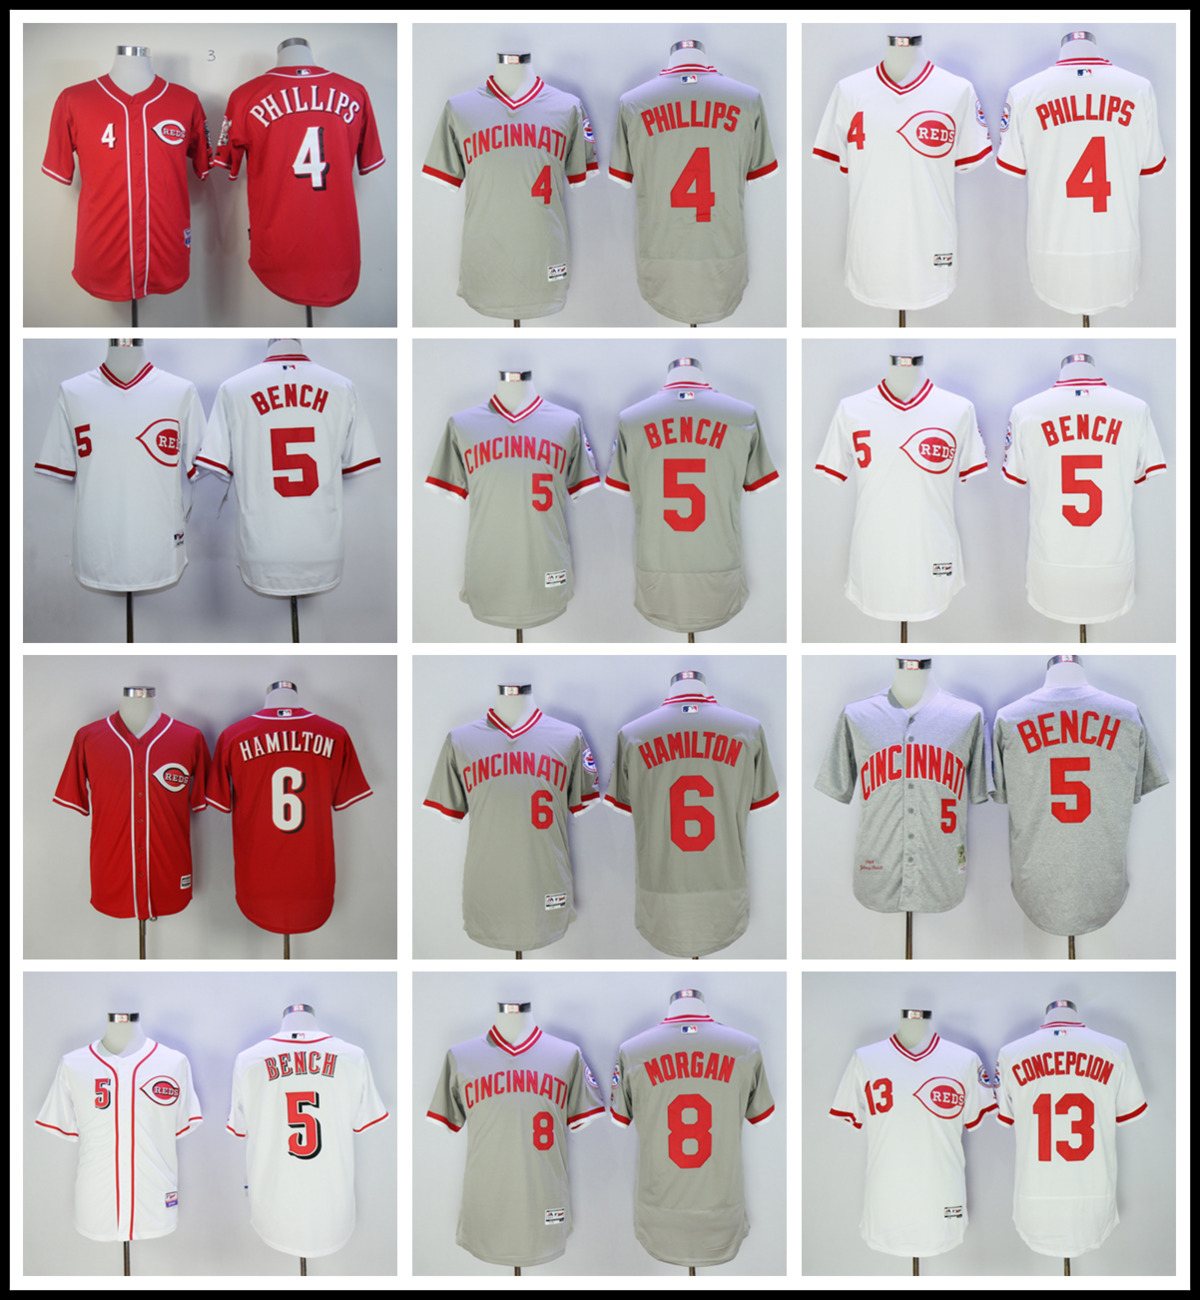 MLB Mens Cincinnati Reds Johnny Bench Joe Morgan Billy Hamilton jerseys